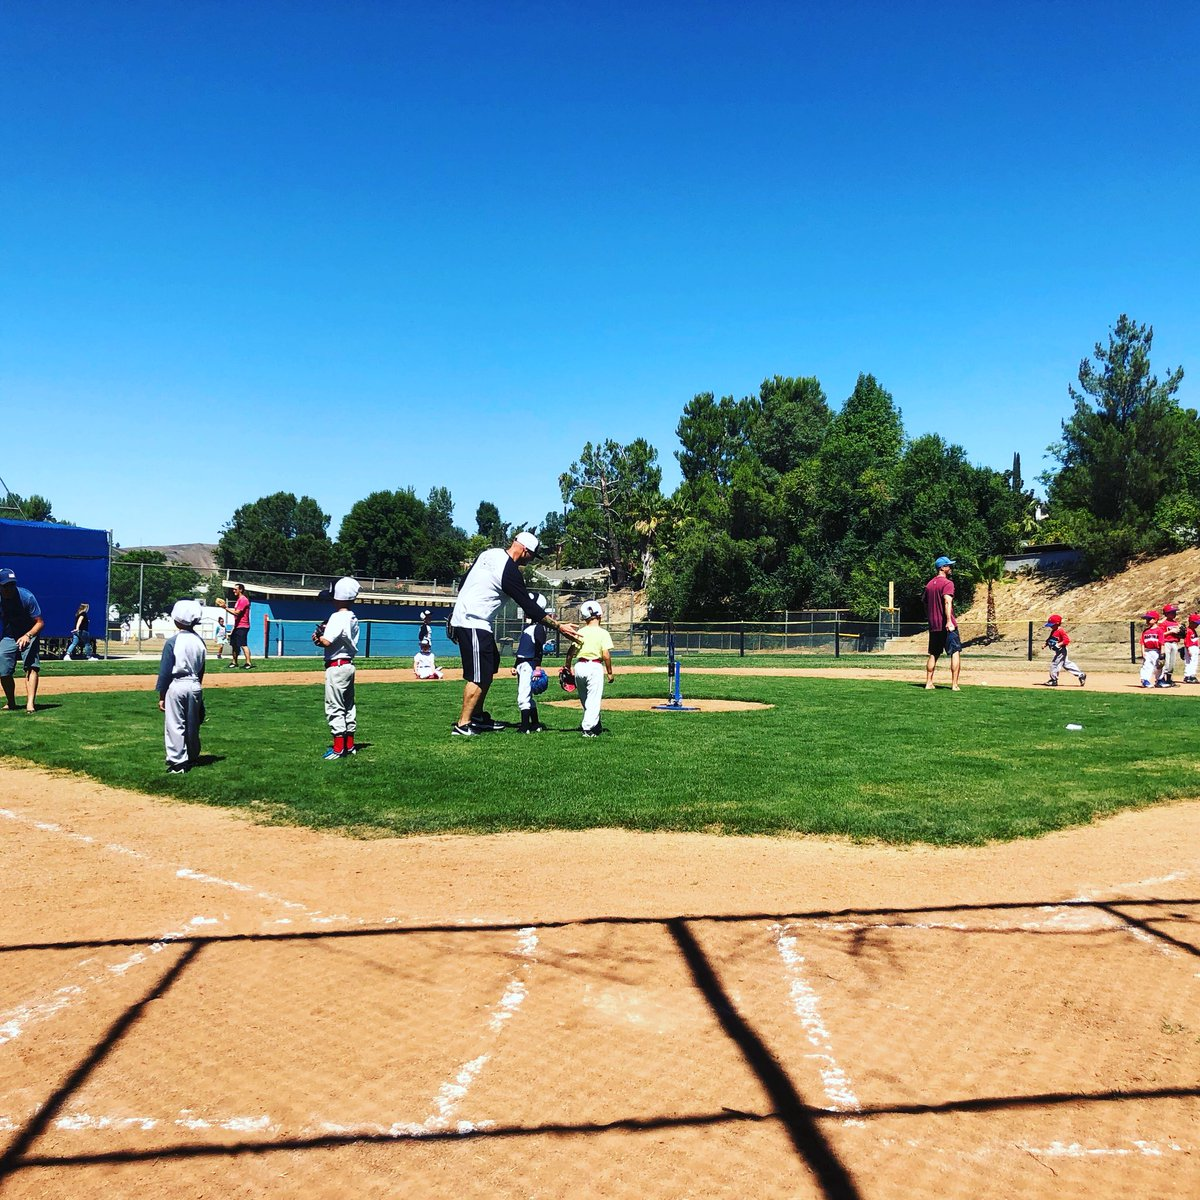 Agoura Pony Baseball On Twitter Our New Shetland Field Is Open